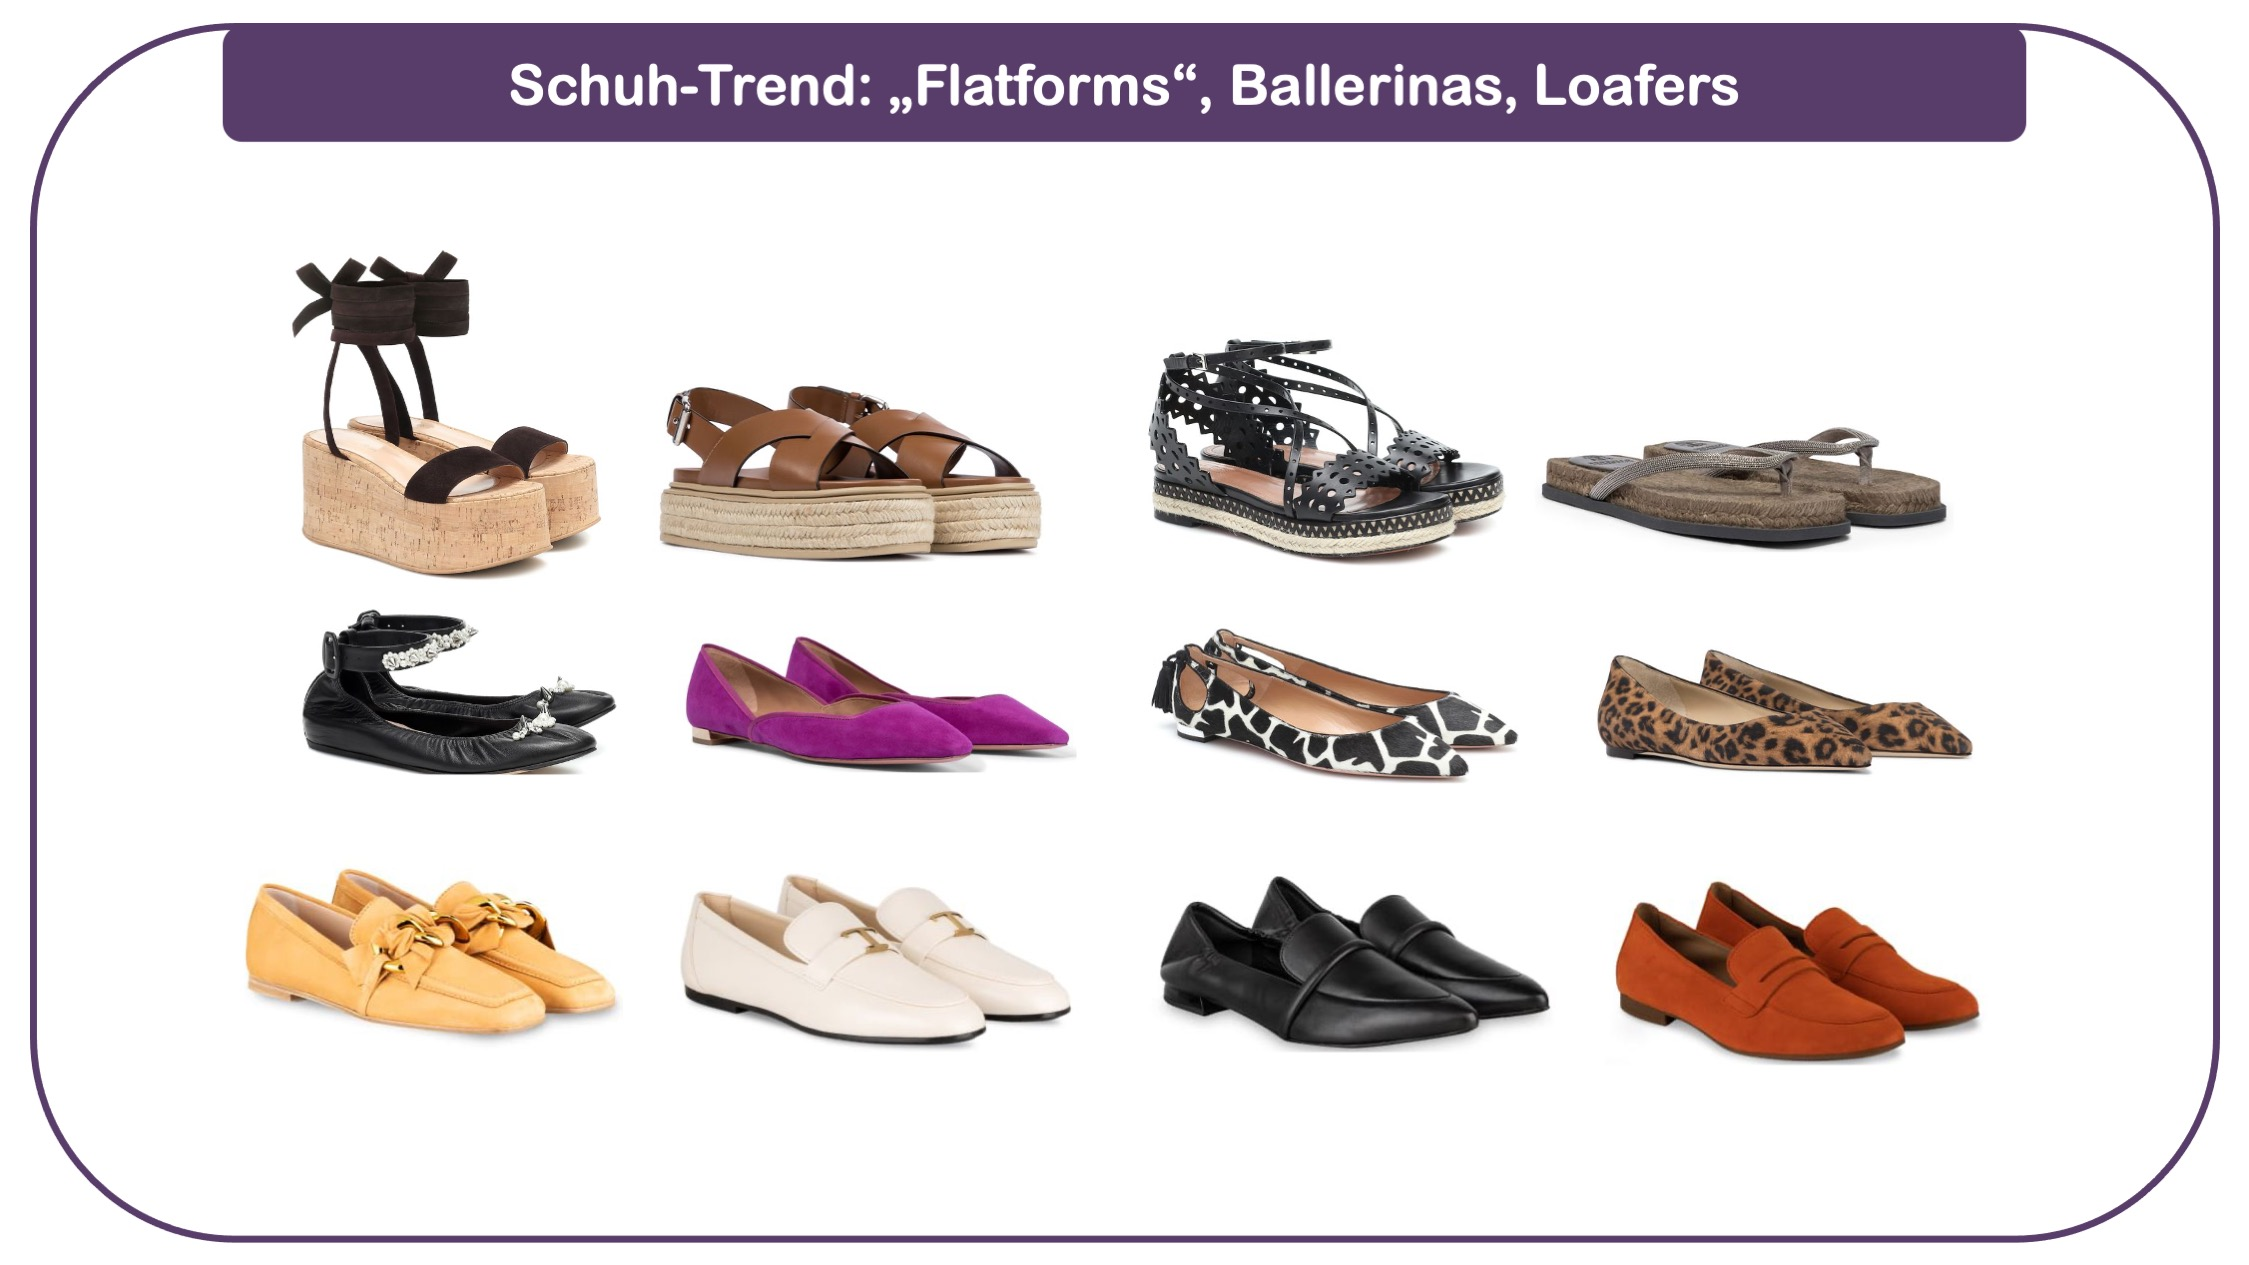 Modetrends für Frauen 40 plus - Ballerinas, Loafers, Flatforms